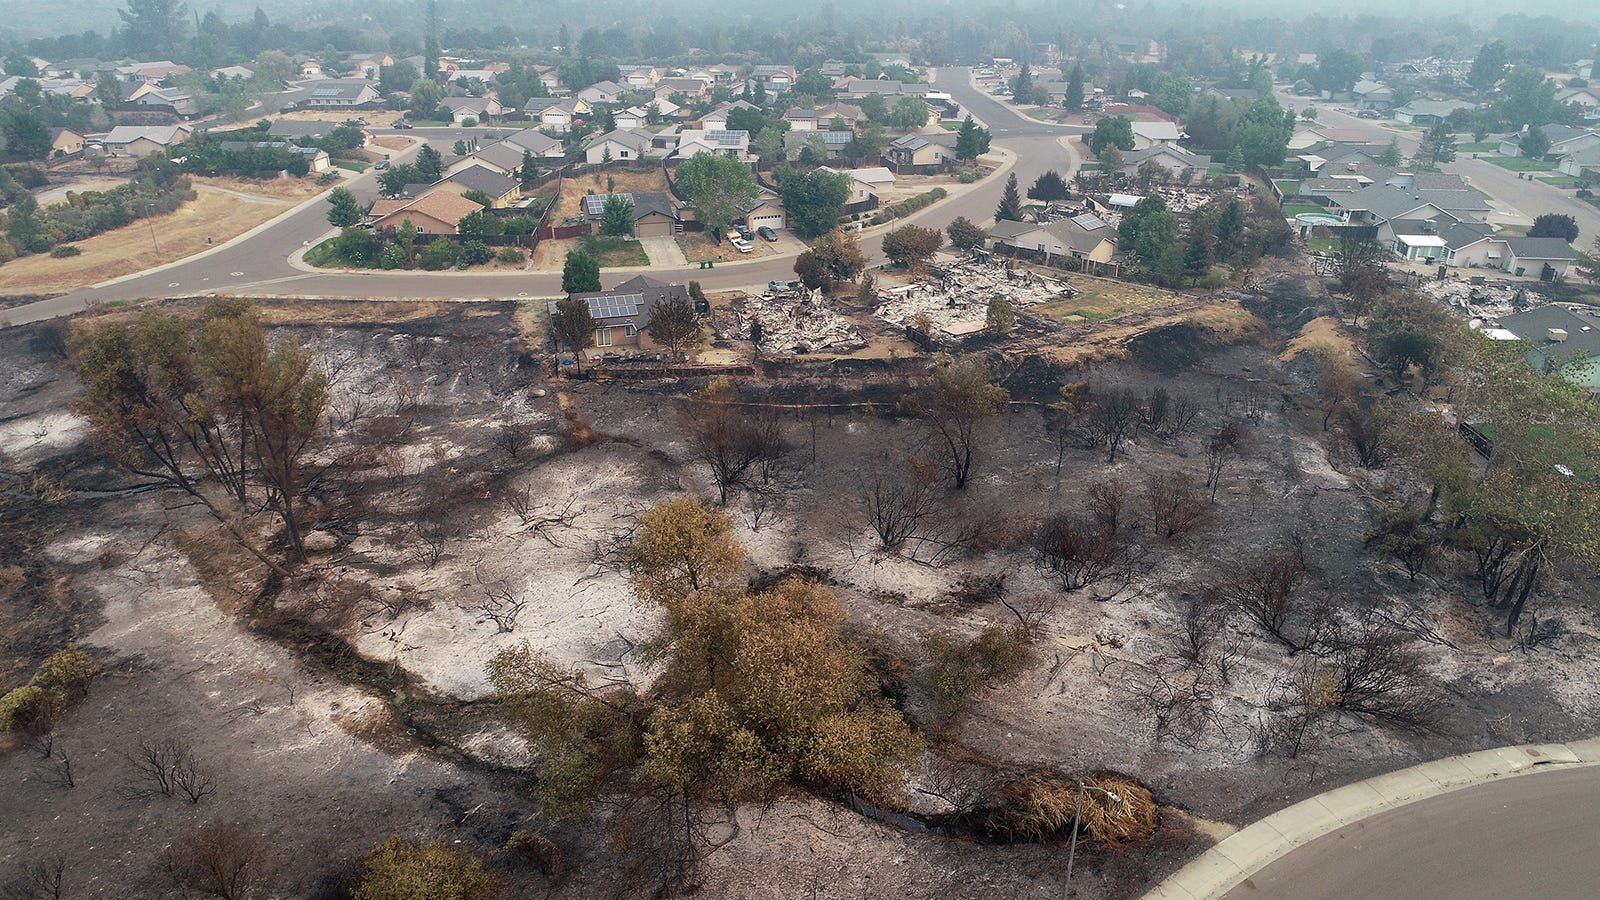 A view of the Lake Keswick Estates neighborhood on the northwest side of Redding, CA. This view of Balboa Drive looking northwest shows the devastation from the Carr Fire as it moved through the area.